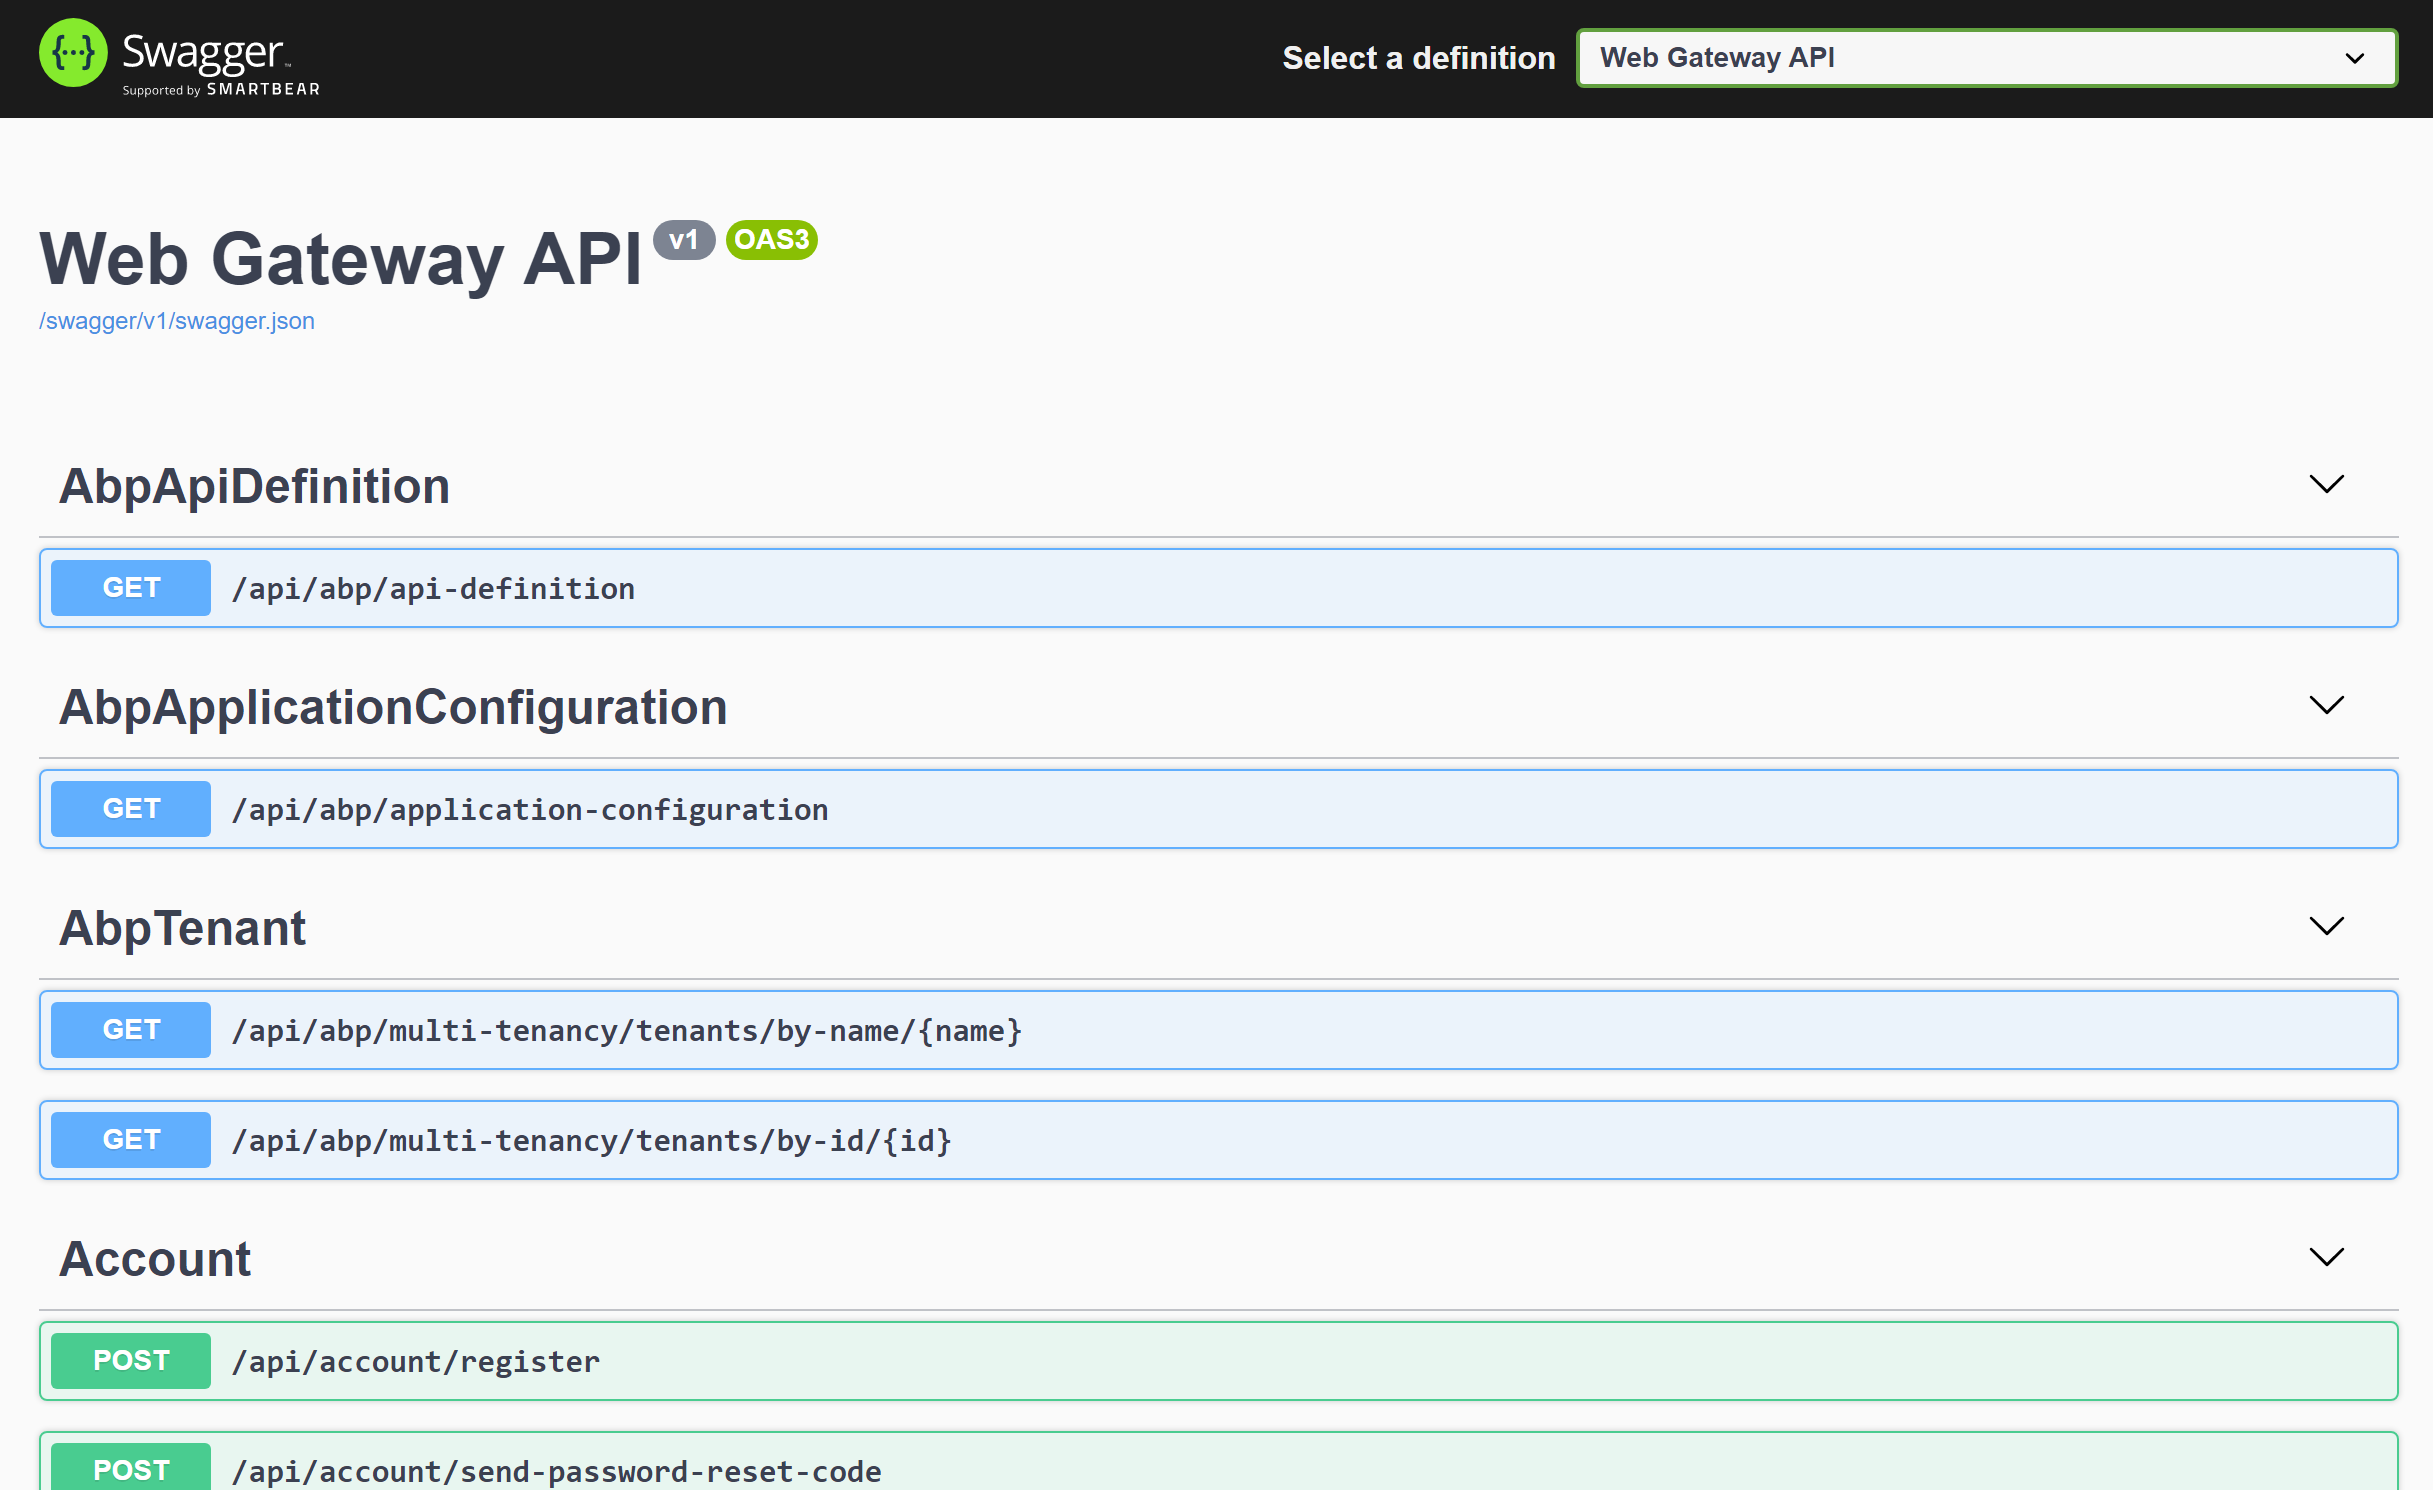 microservice-template-web-gateway-swagger-ui